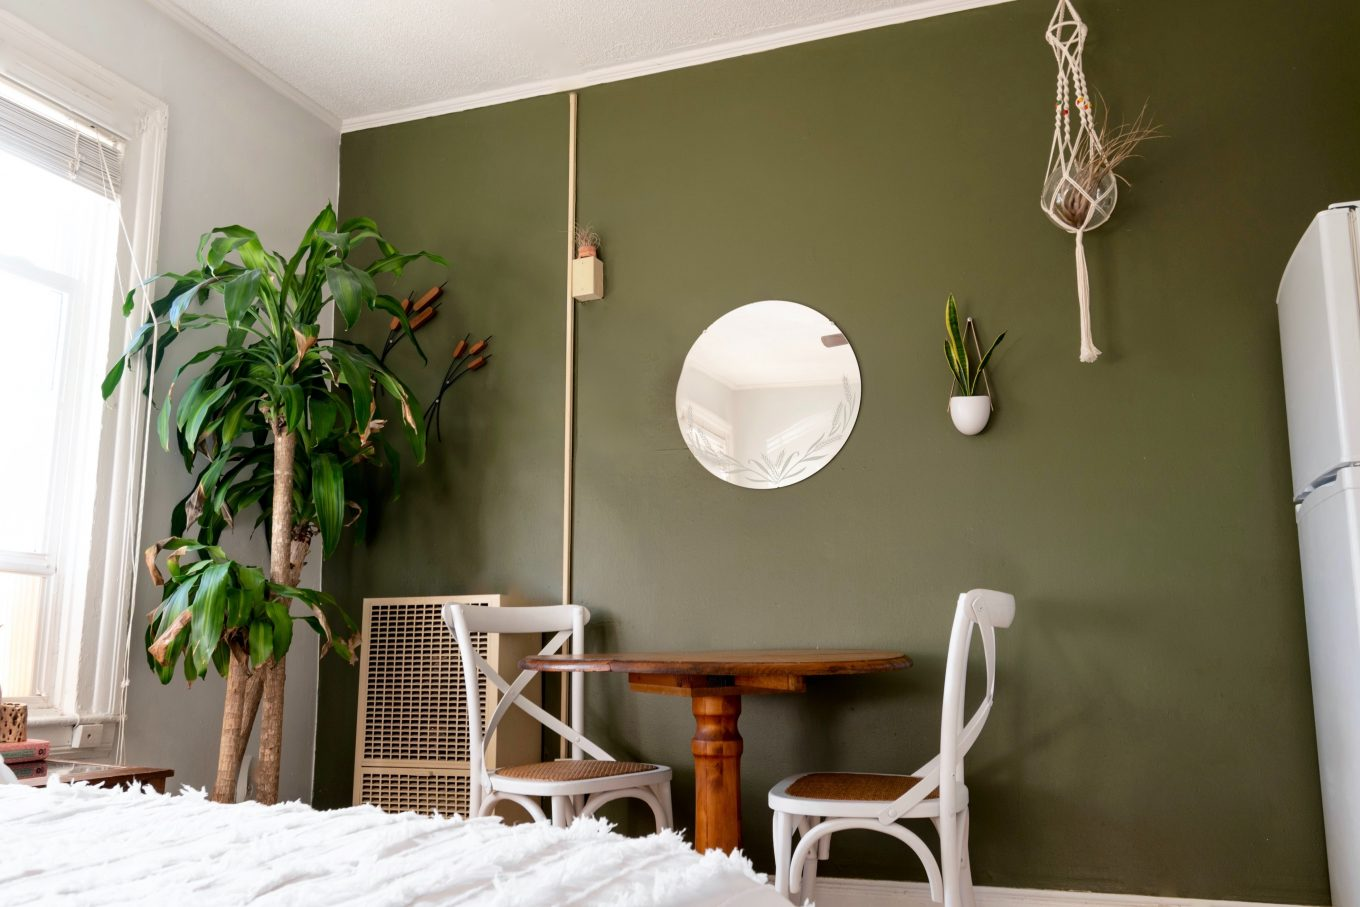 white and brown wooden chair beside green potted plant